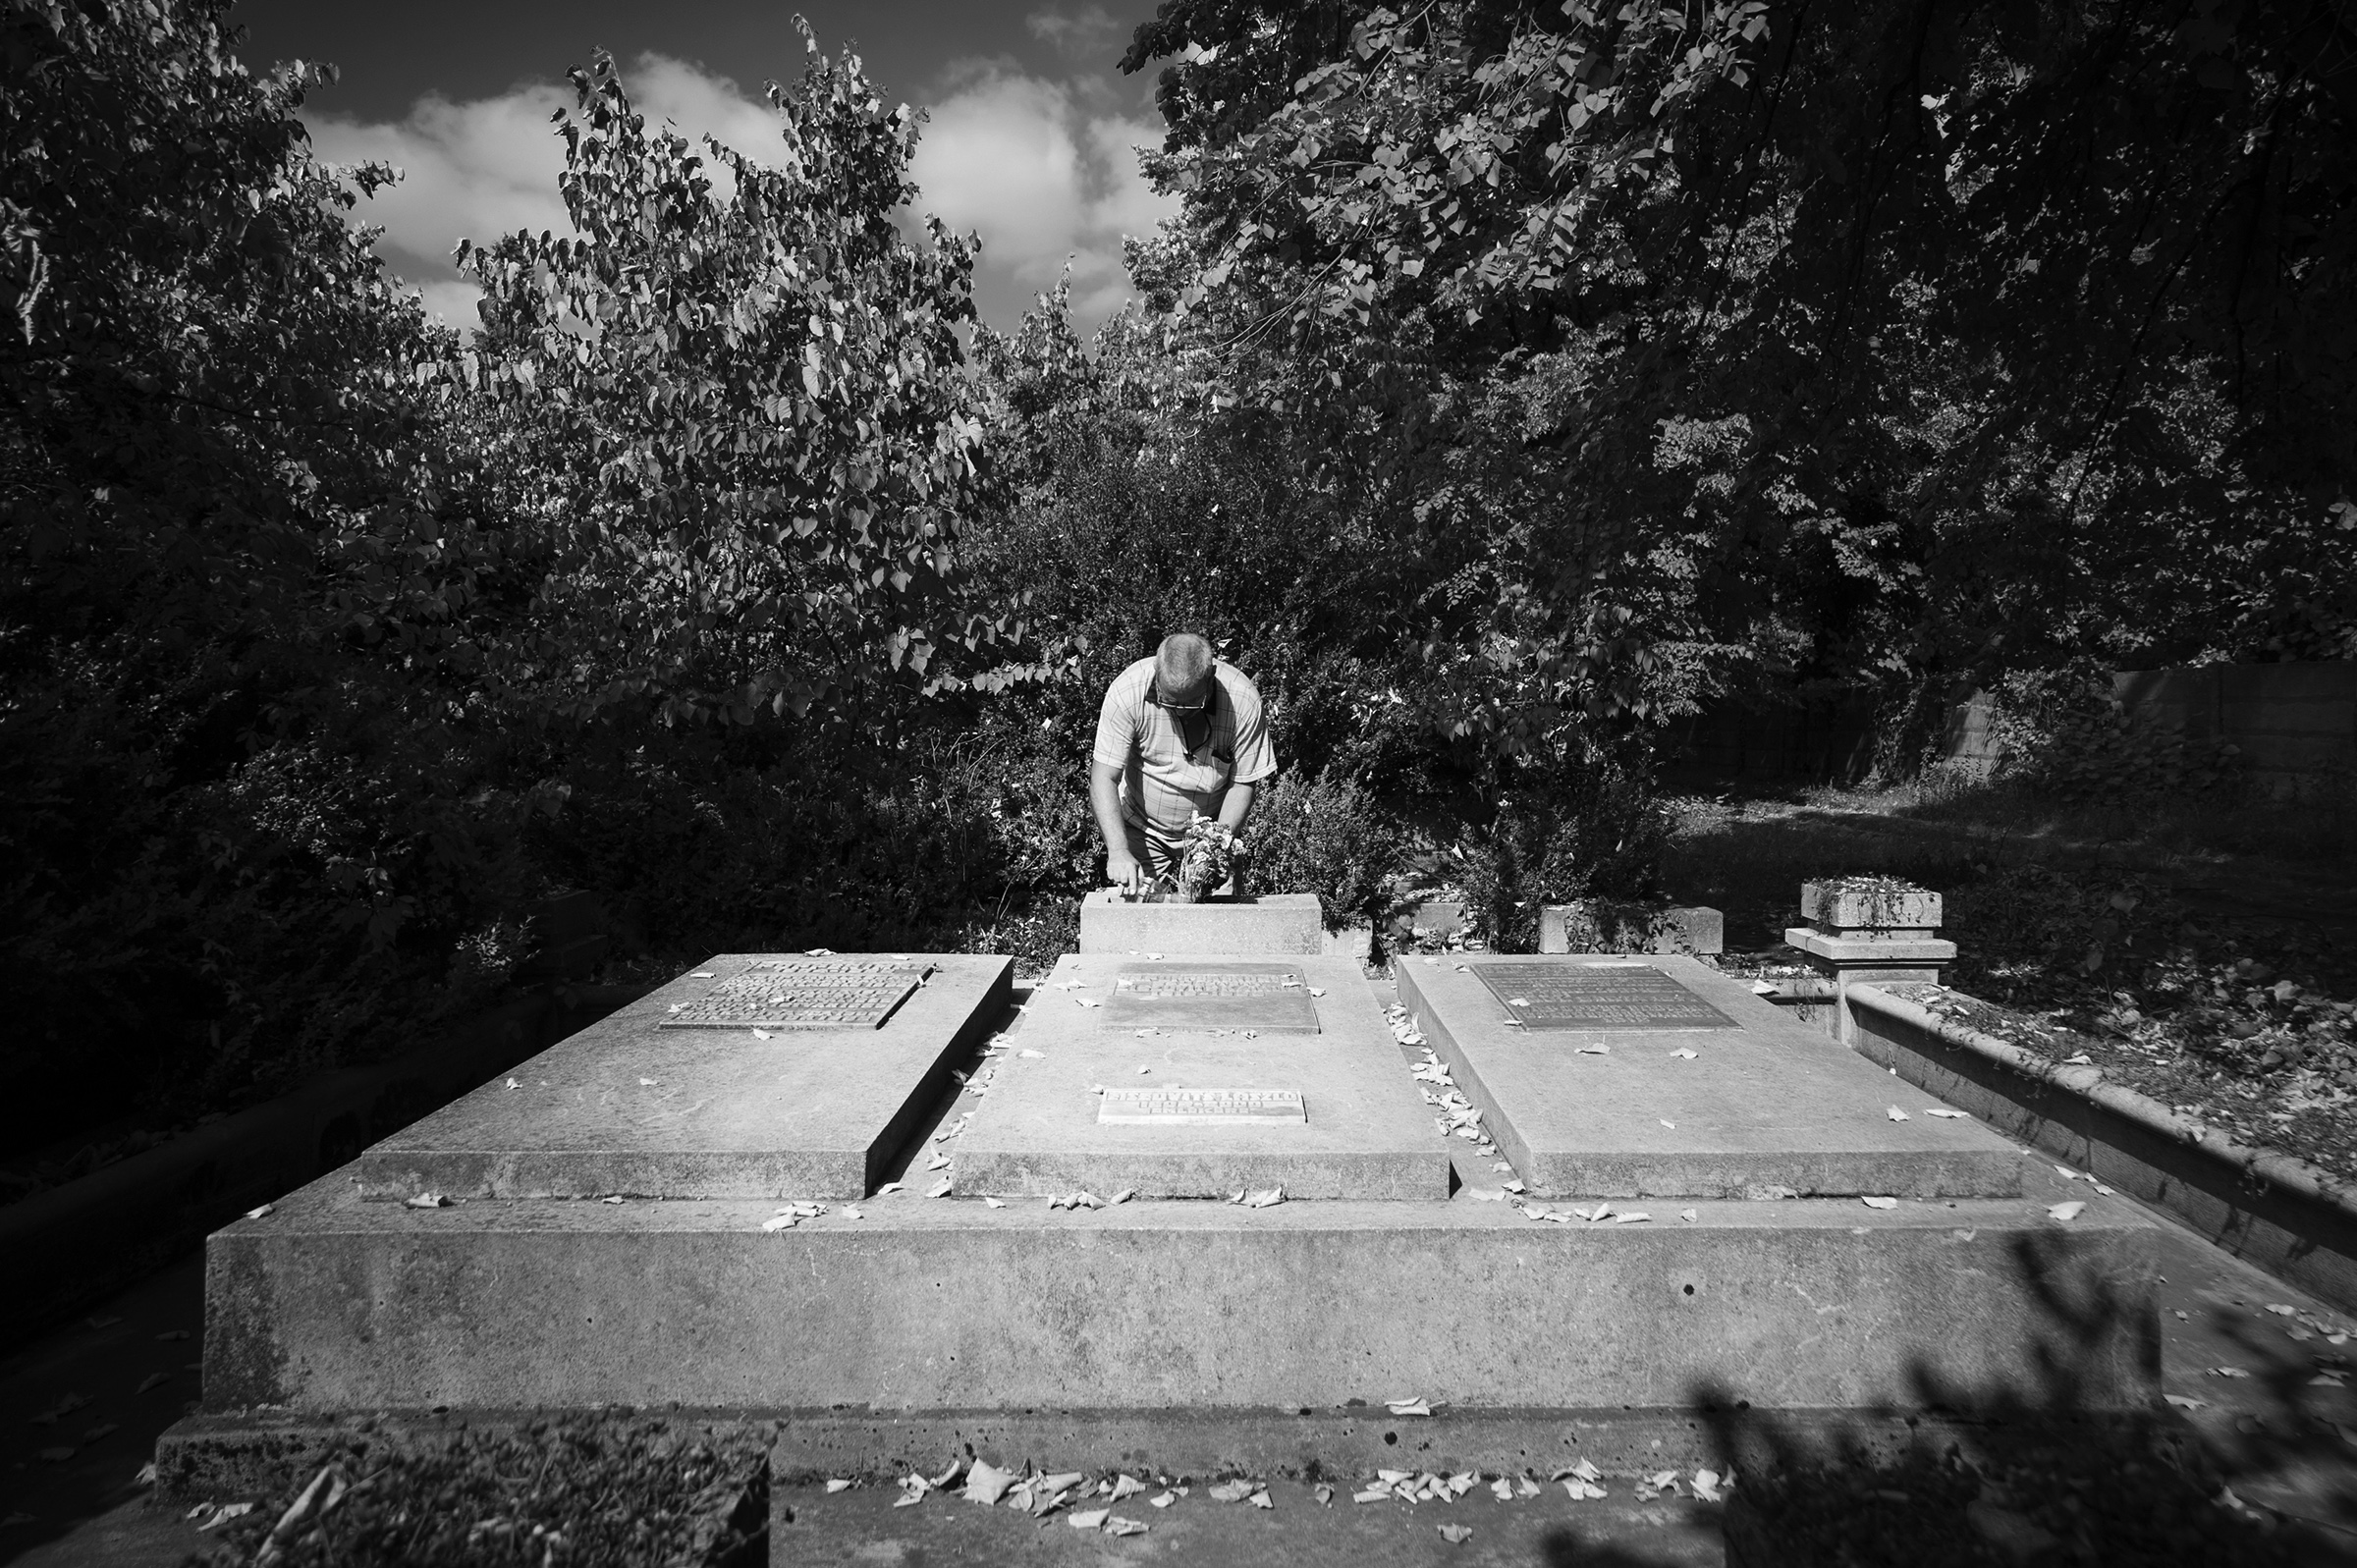 Peter Popper visits the gravesit of his relatives in the small, overgrown Jewish cemetery in Oradea, Romania on August 25, 2013. (Photo by Daniel Owen/GroundTruth)